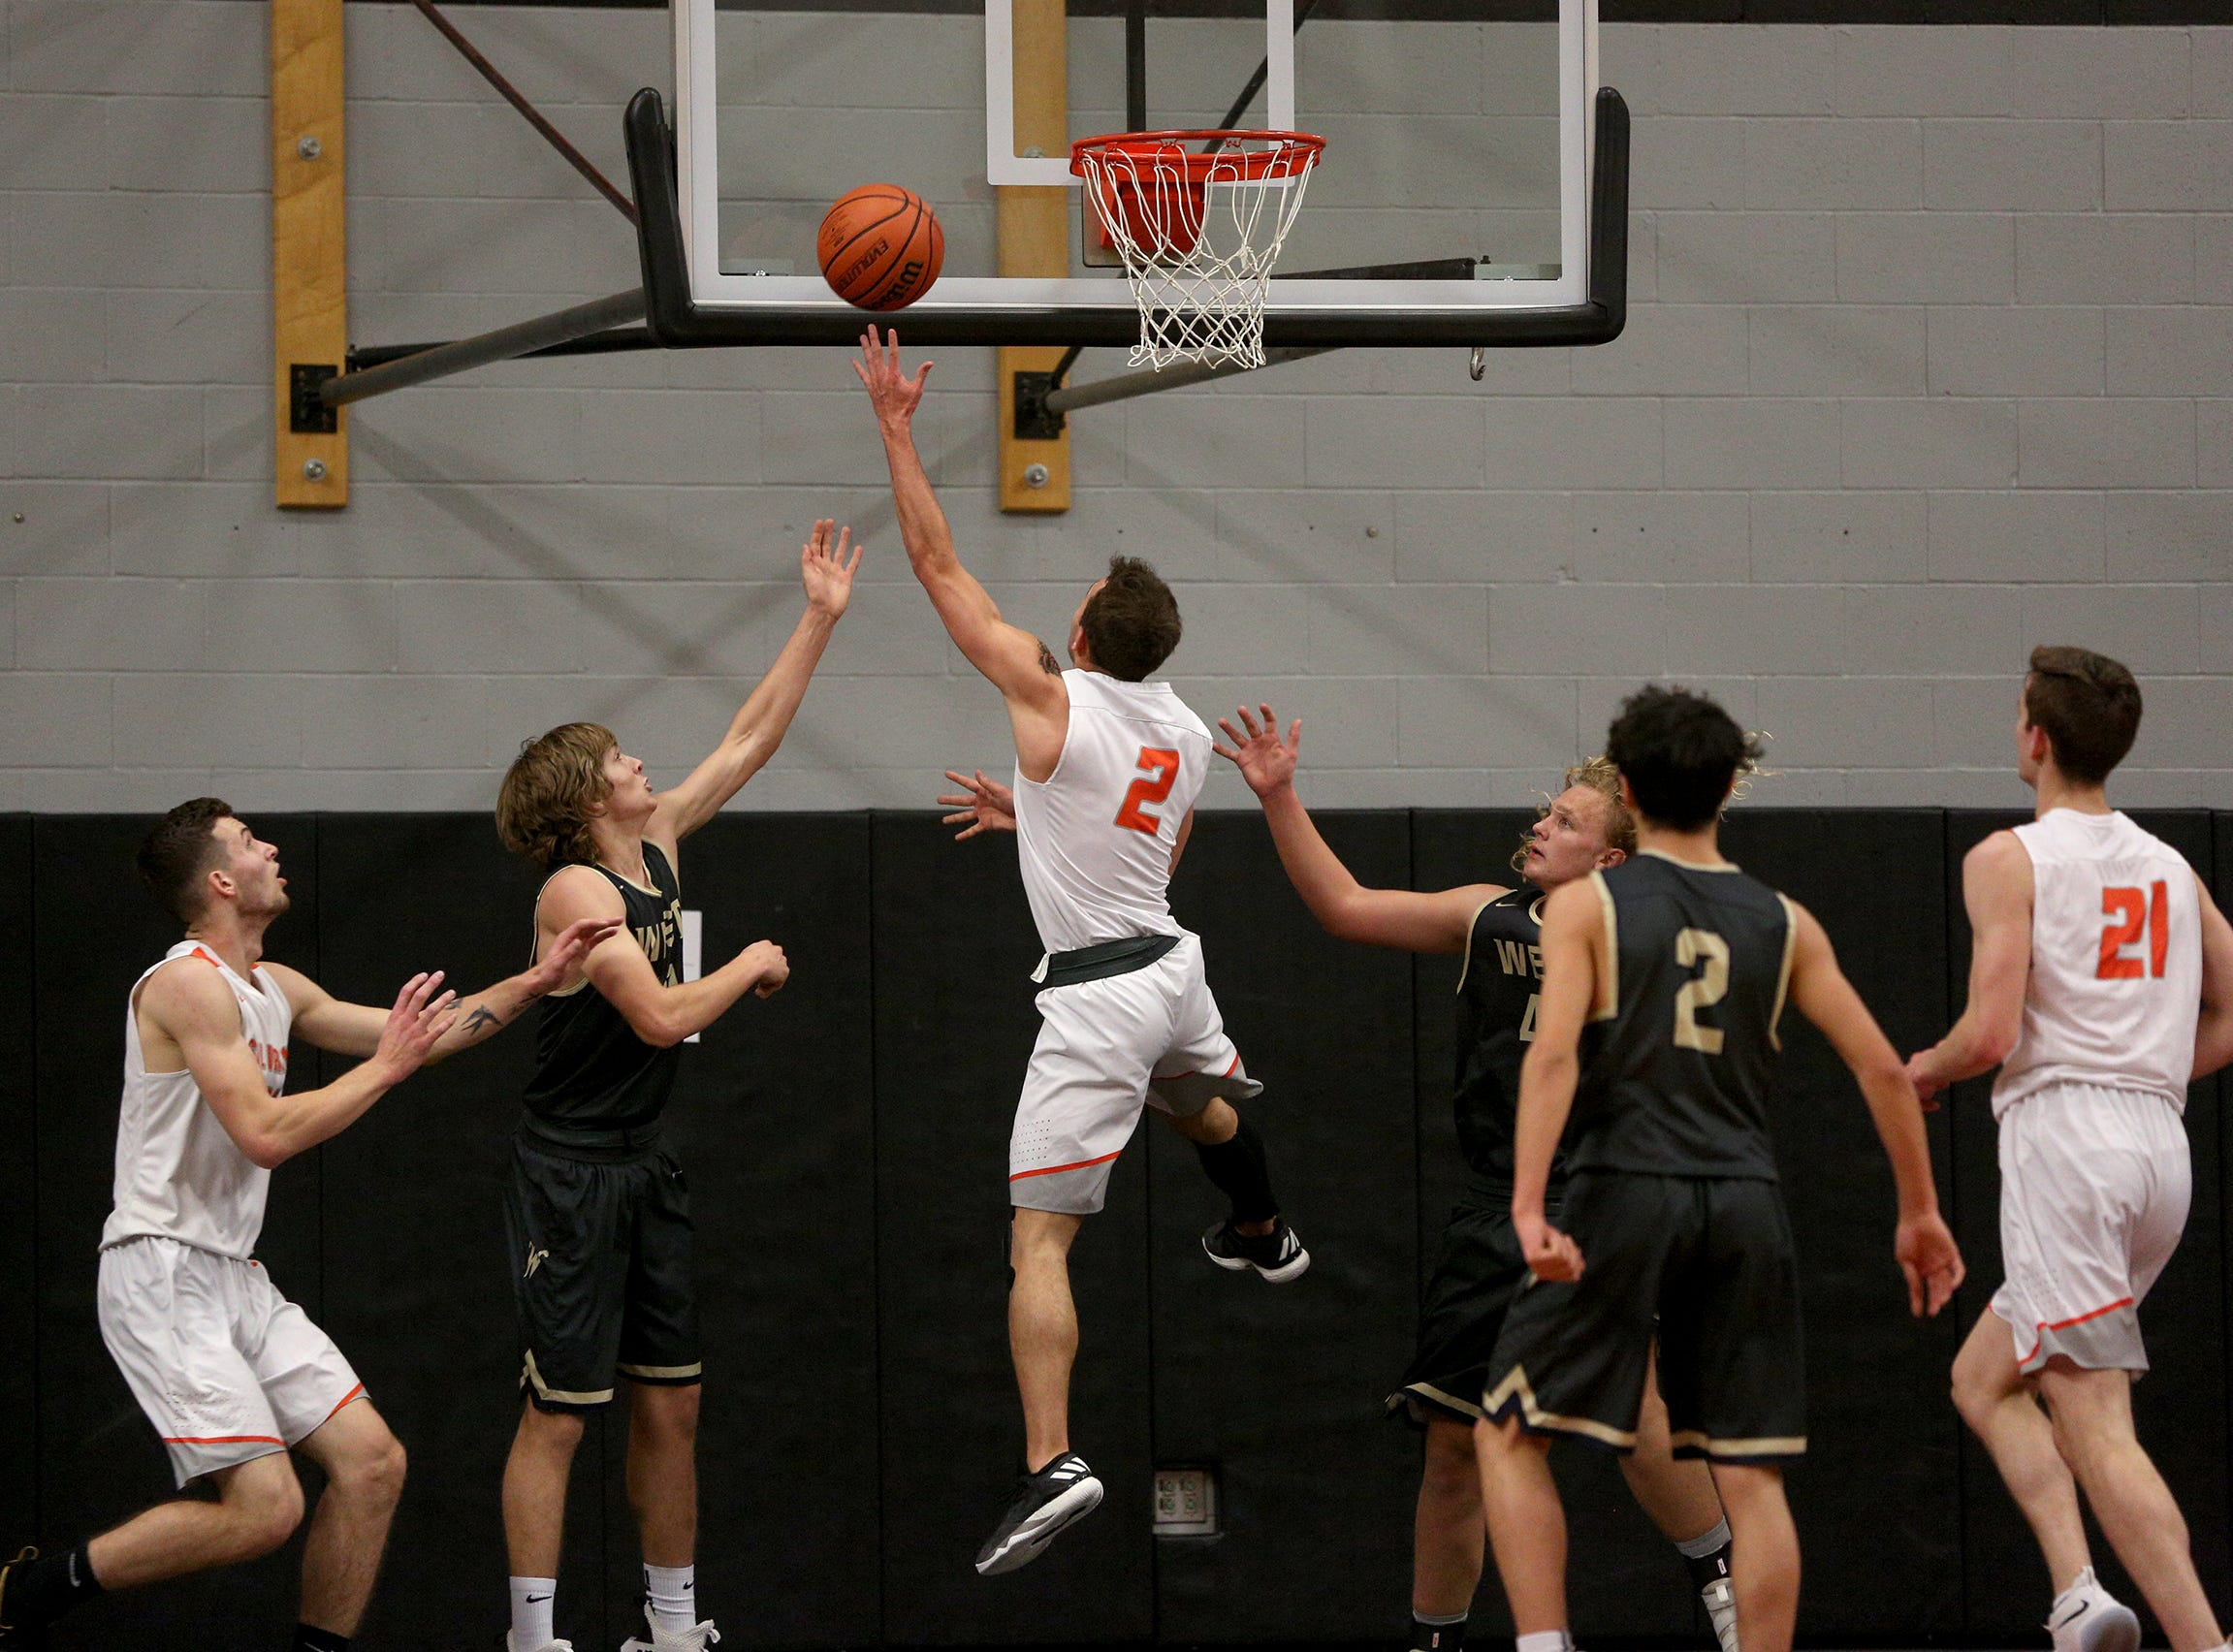 Silverton's Jonah Downey (2) goes up for a layup during the West Albany vs. Silverton High School boys basketball game in Silverton on Friday, Jan. 25, 2019.